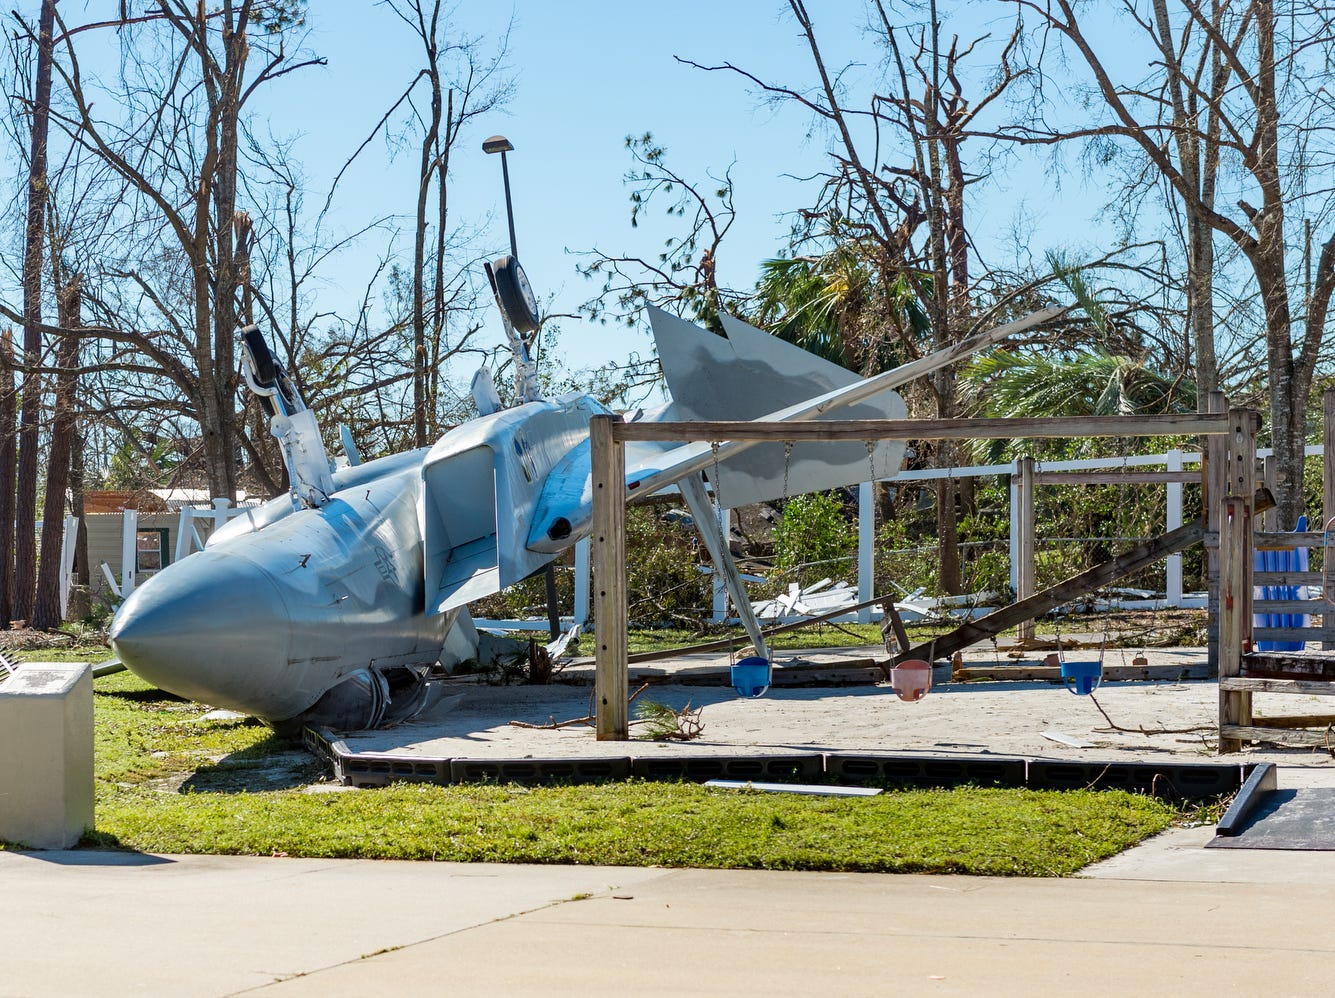 Damage cause by Hurricane Michael in Panama City, FL. Friday.